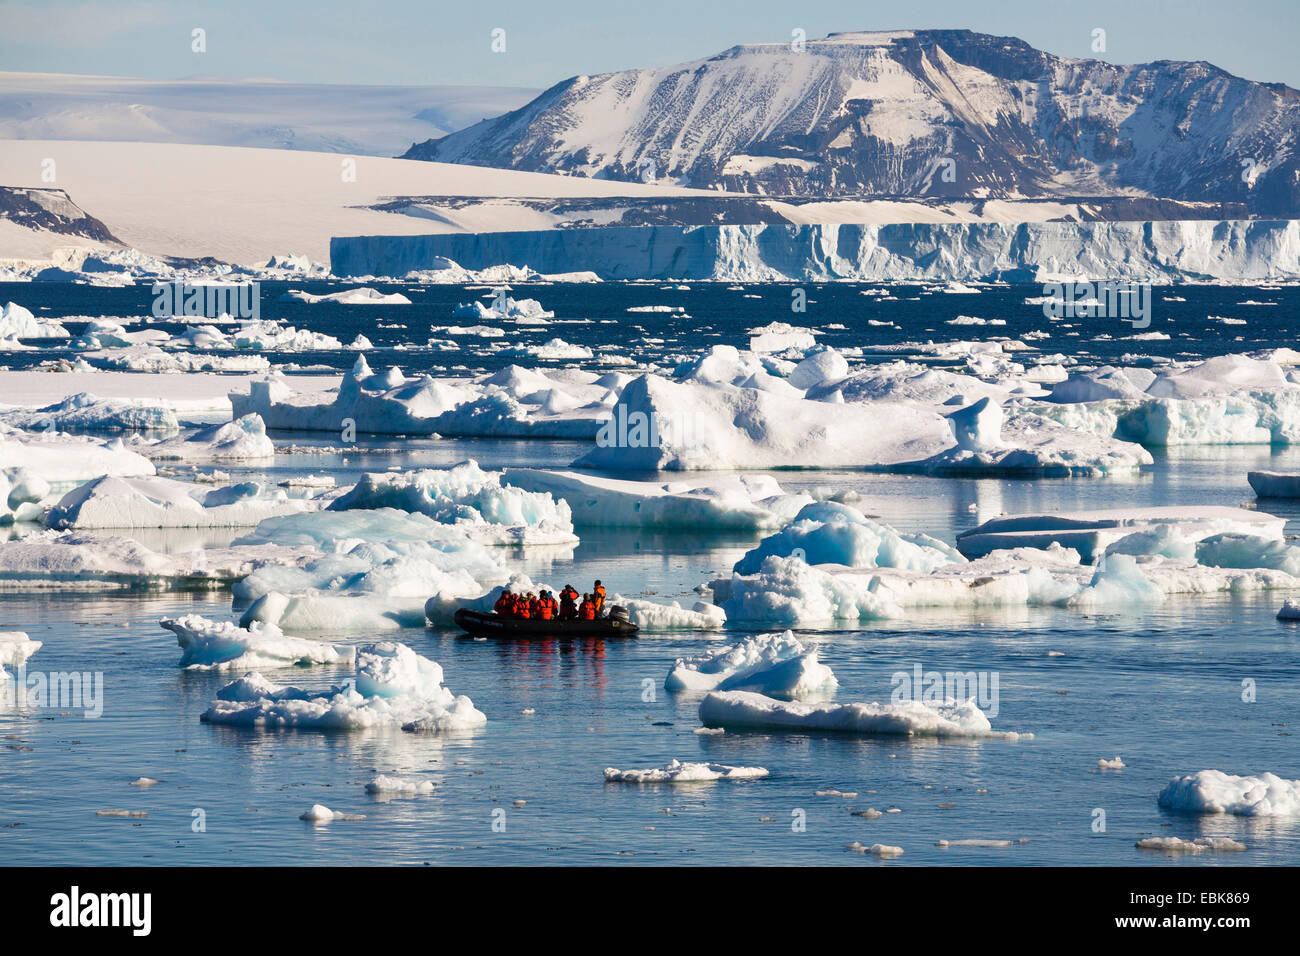 rubber raft trip among icebergs in the Weddell Sea, Antarctica - Stock Image